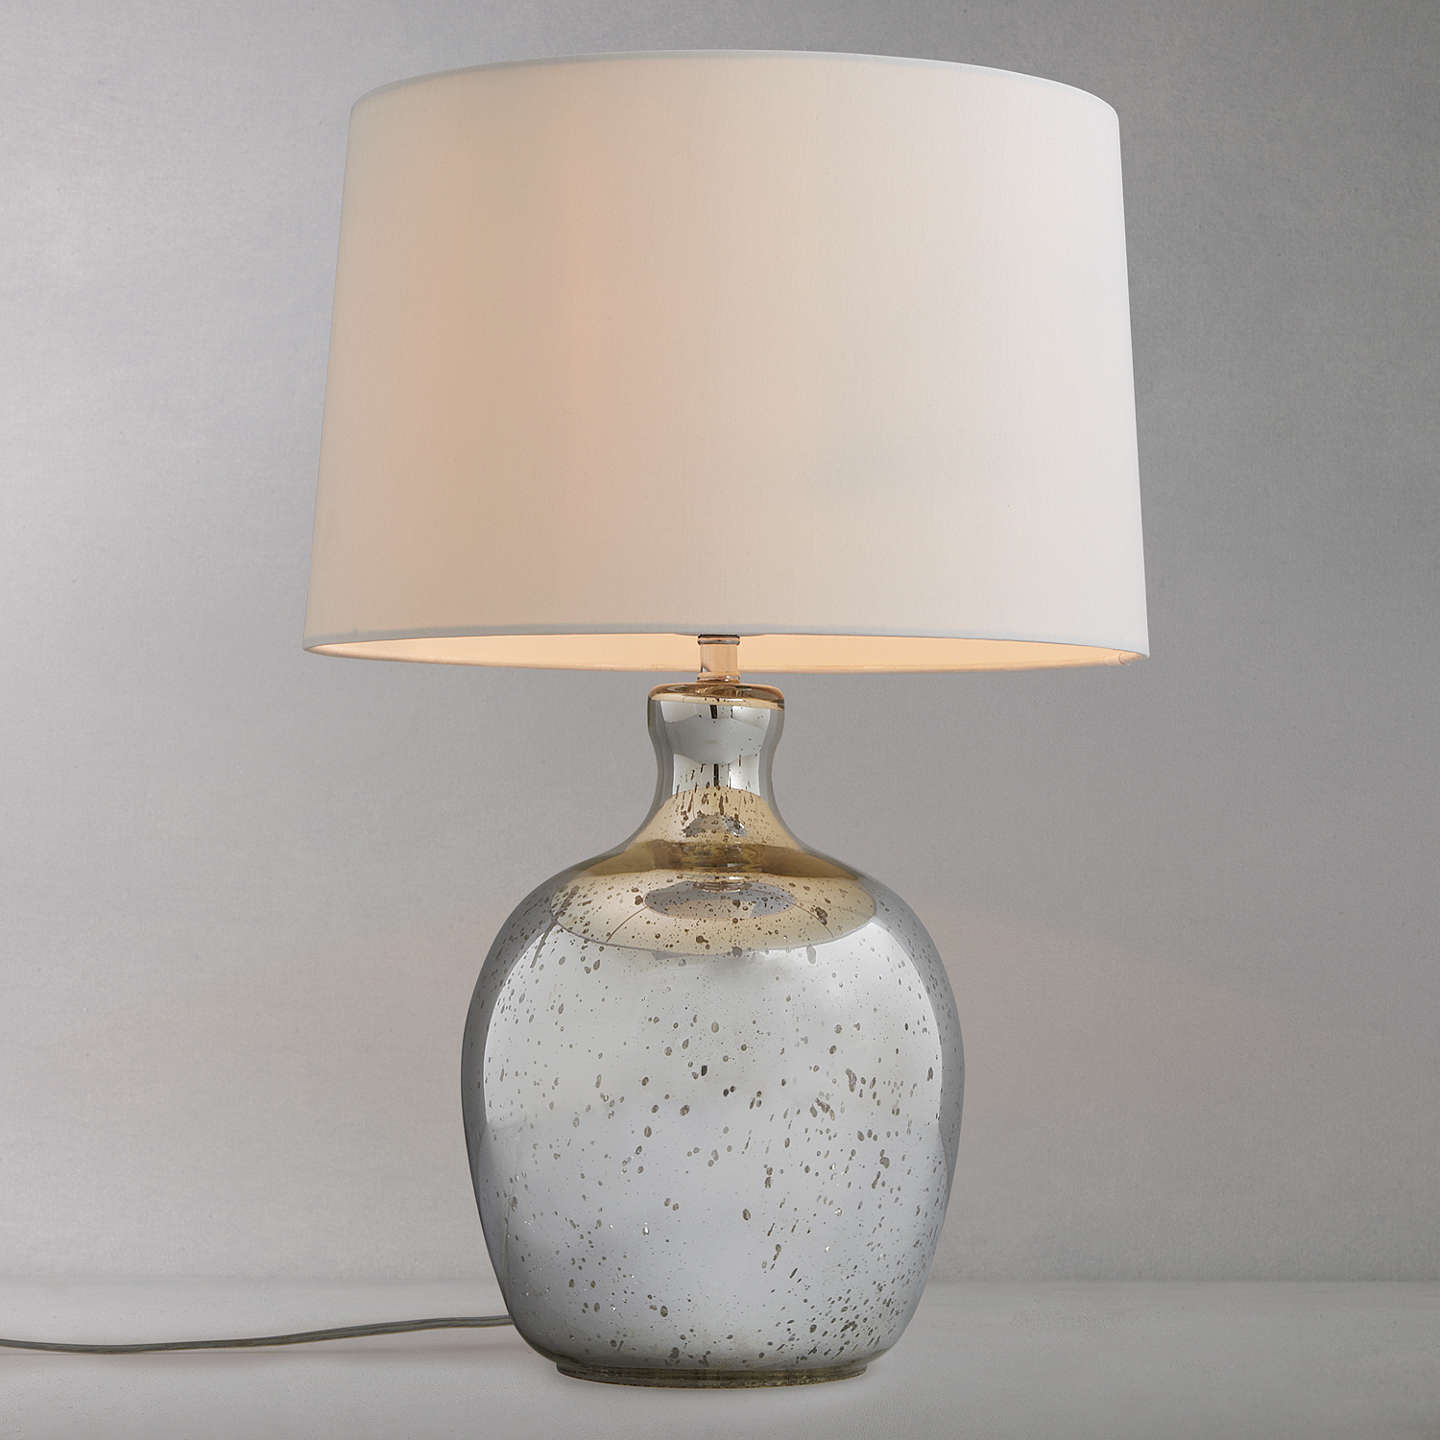 John lewis tabitha distressed mirror table lamp at john lewis buyjohn lewis tabitha distressed mirror table lamp online at johnlewis aloadofball